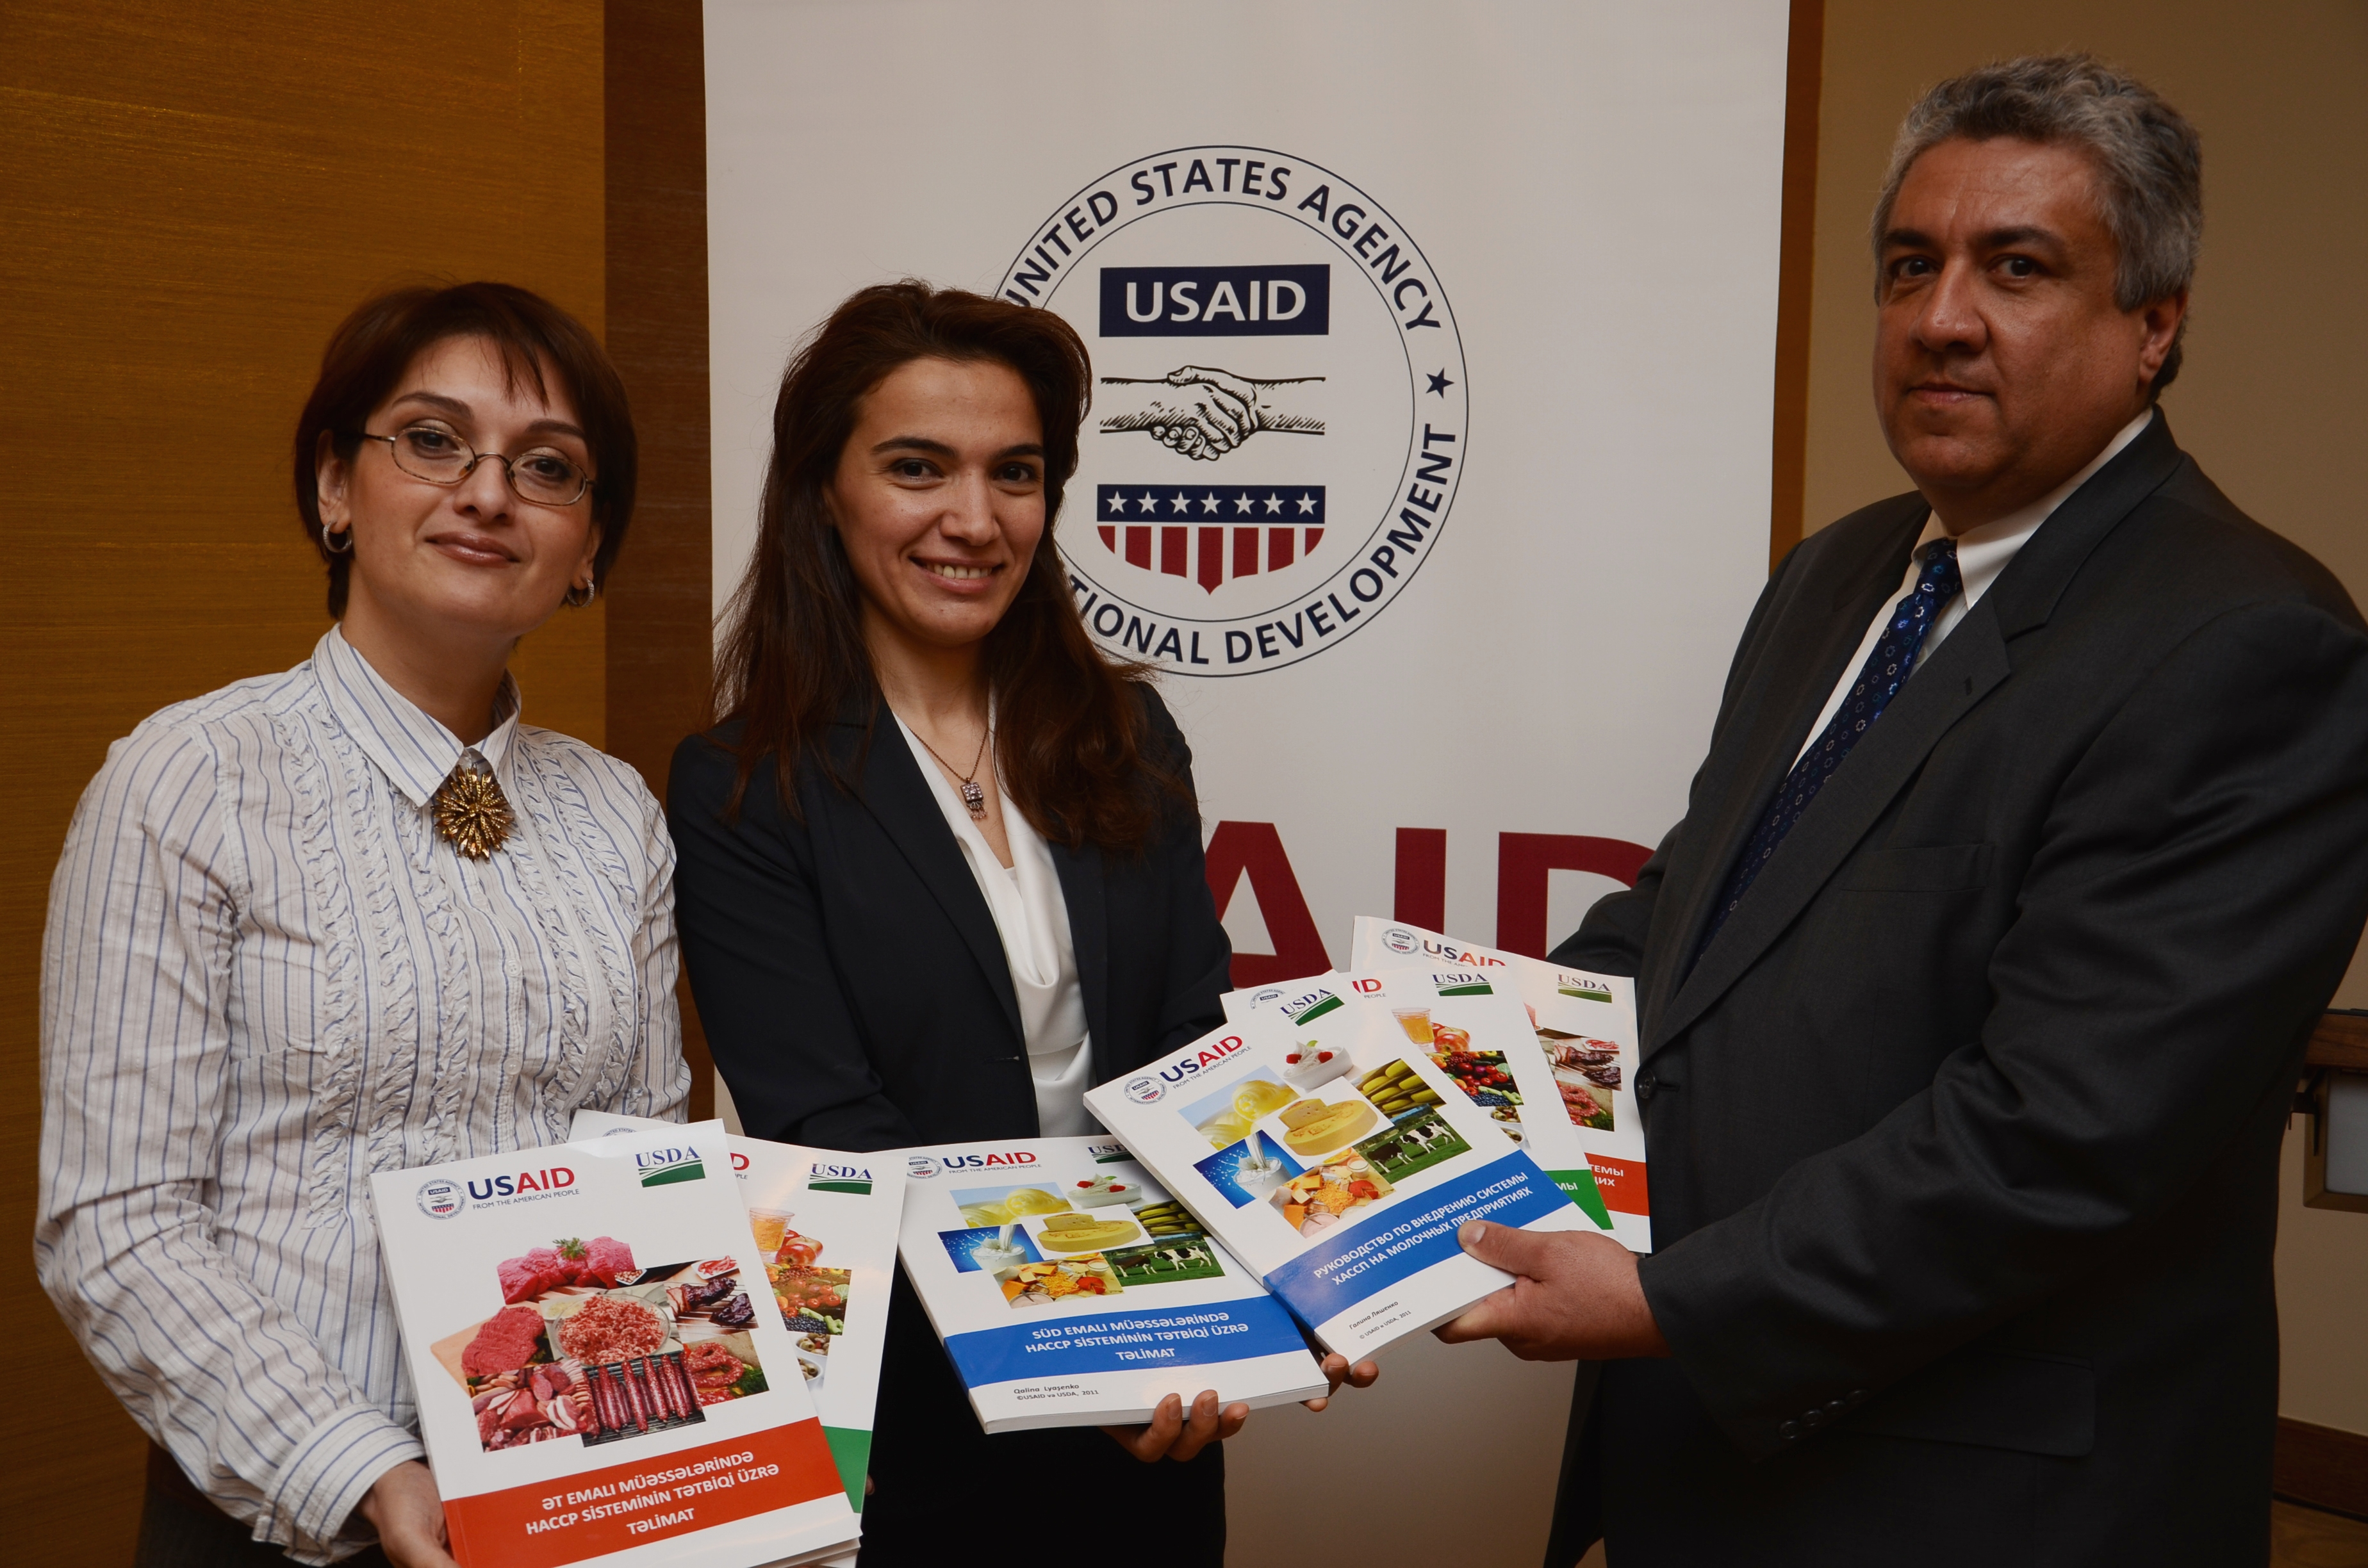 USAID and USDA collaborated in the production of the HACCP Manuals.